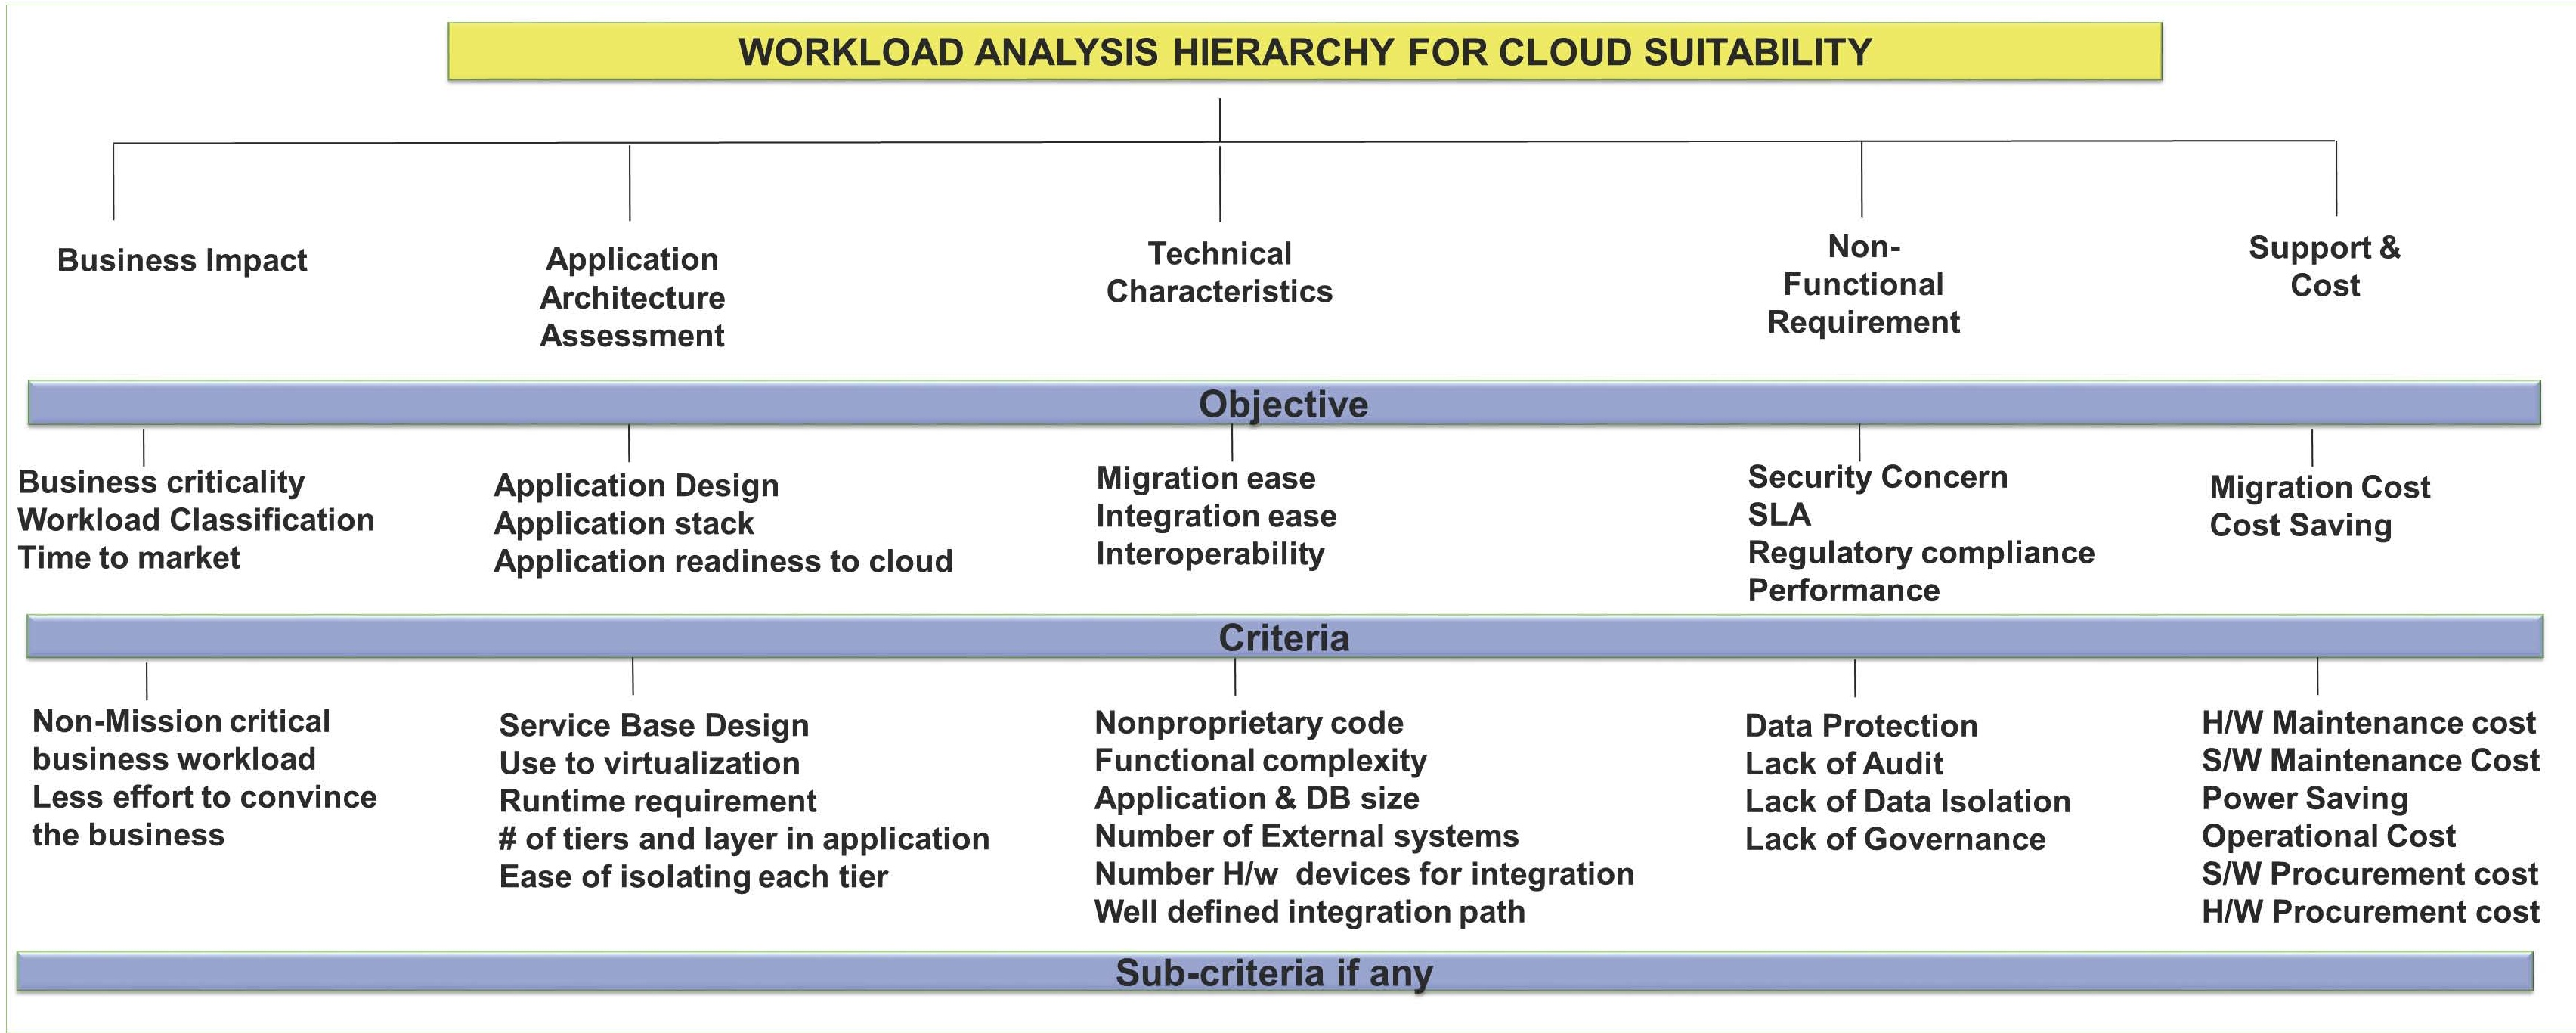 How to choose the right cloud model with a workload analysis - Cloud ...